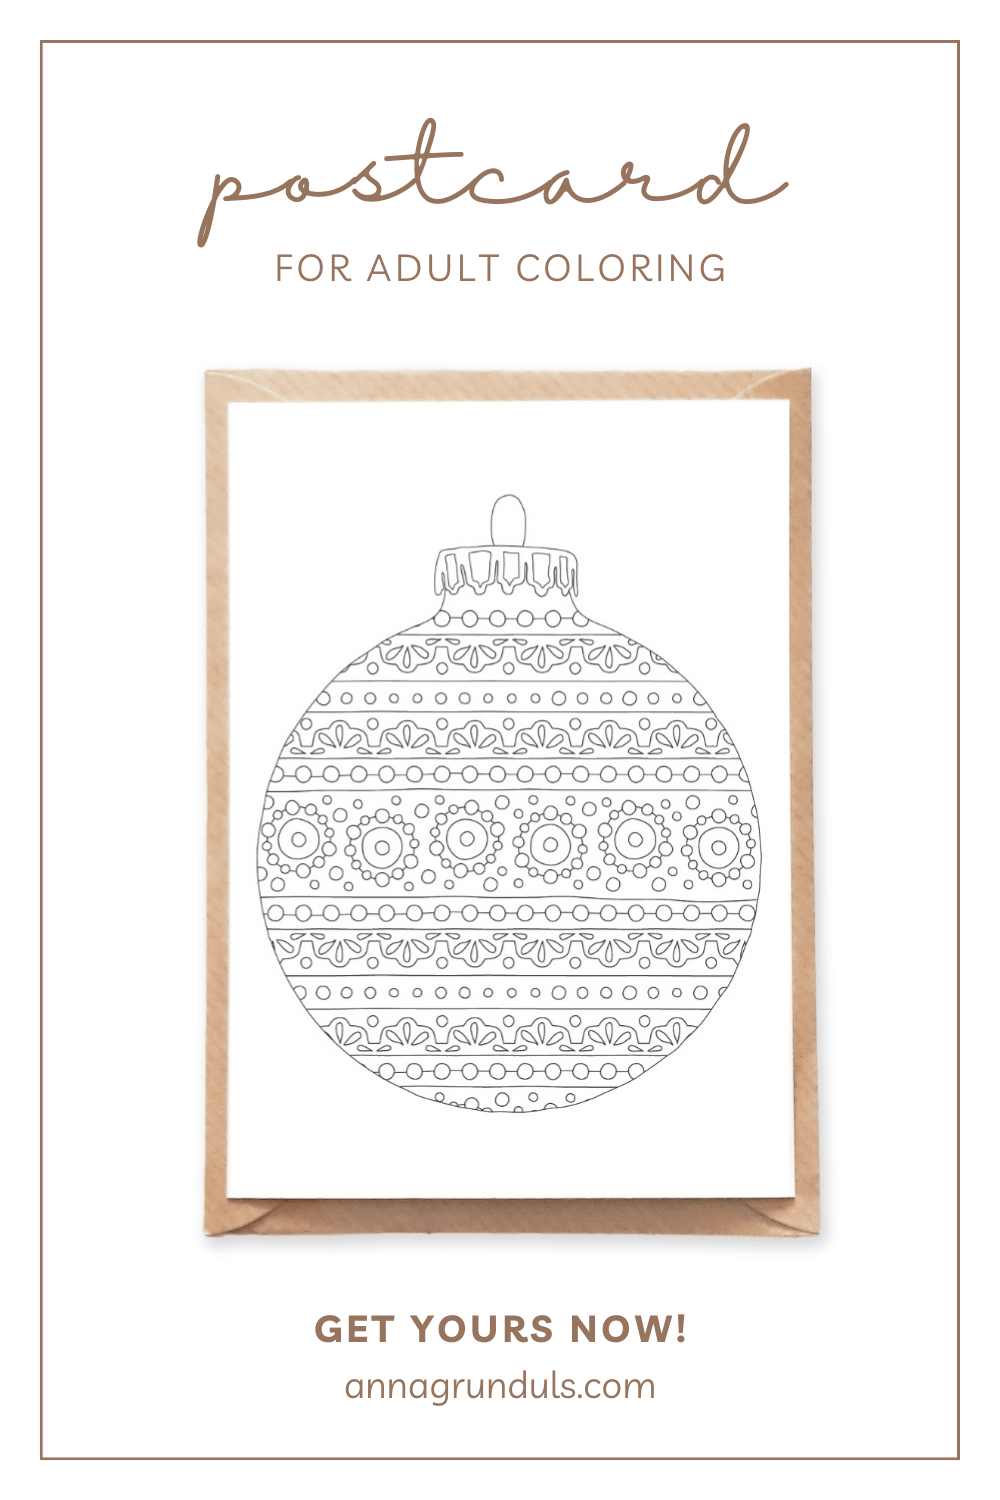 round ornament postcard for adult coloring pinterest pin